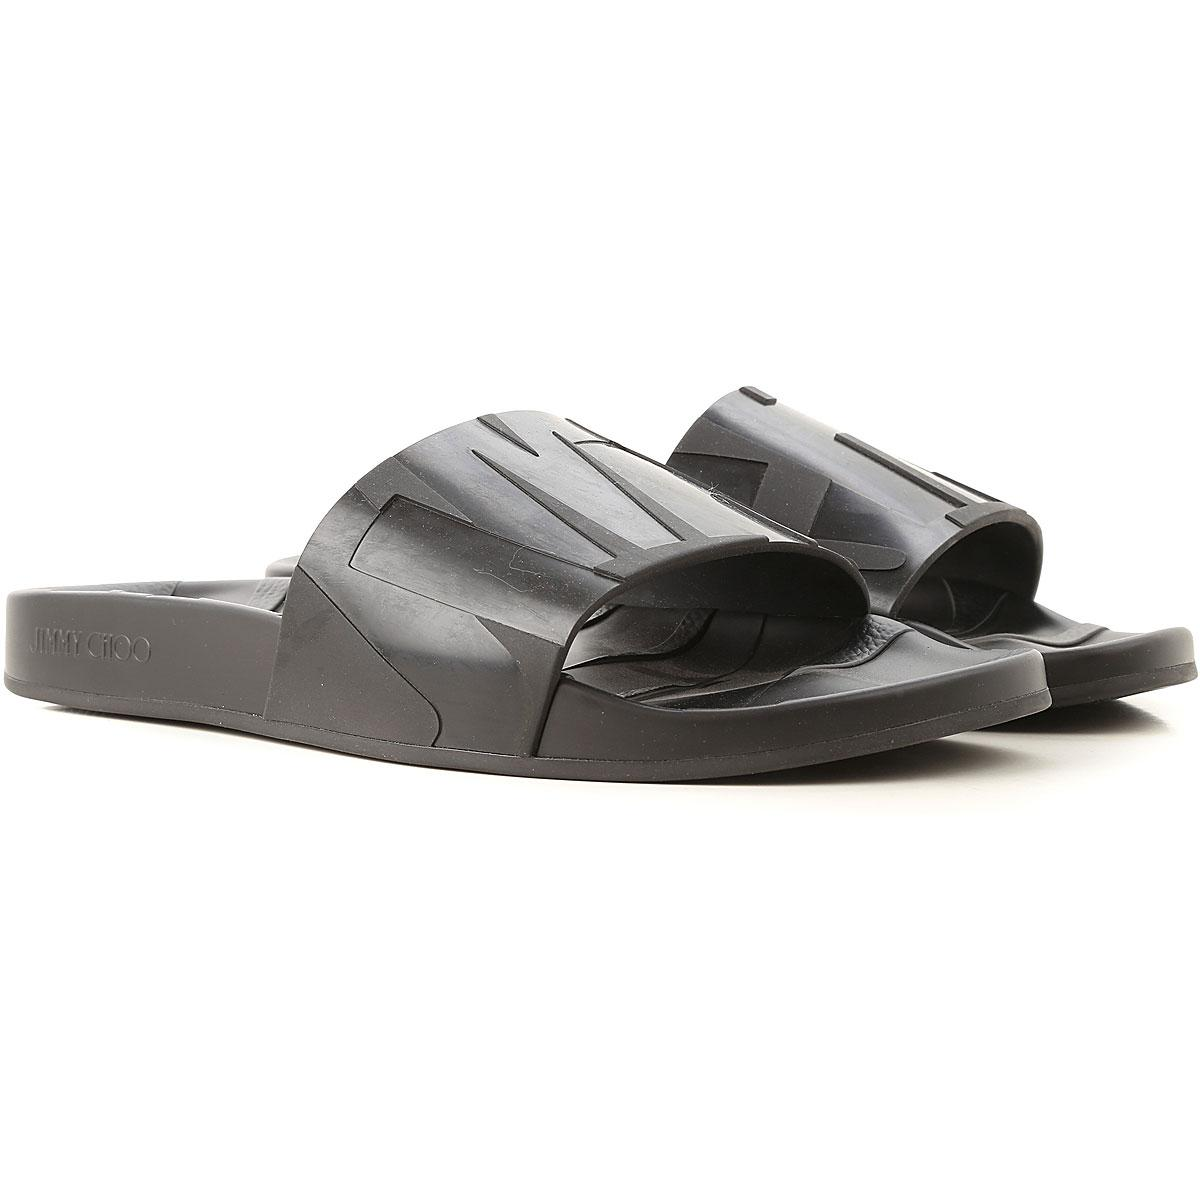 98e475a355b5 Jimmy Choo - Black Sandals For Men On Sale In Outlet for Men - Lyst. View  fullscreen